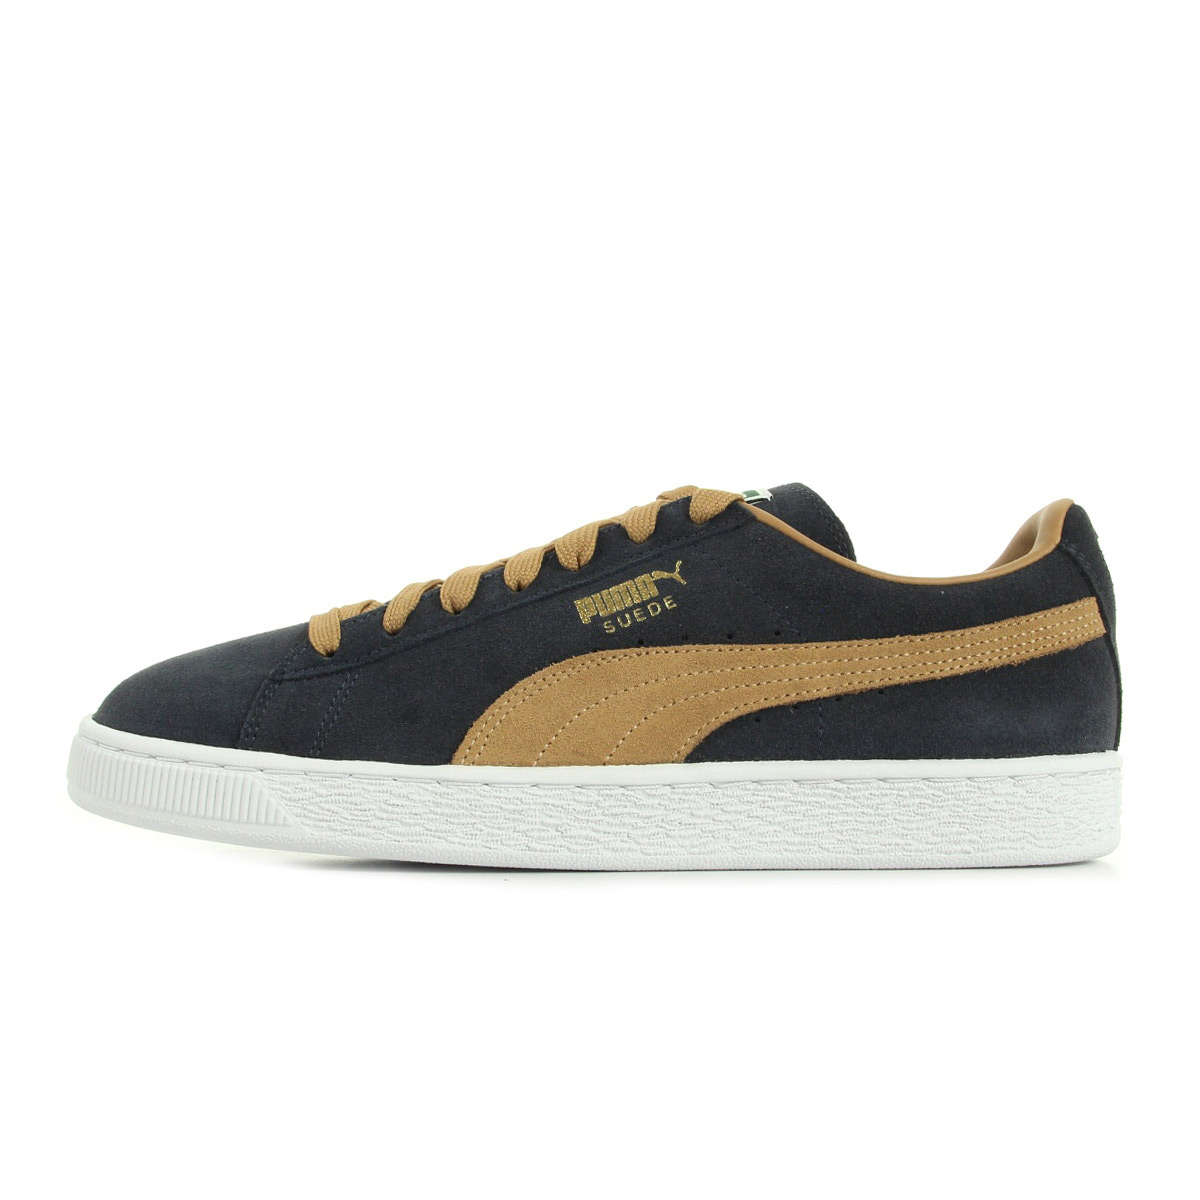 chaussures baskets puma homme suede classic taille bleu marine bleue cuir lacets ebay. Black Bedroom Furniture Sets. Home Design Ideas